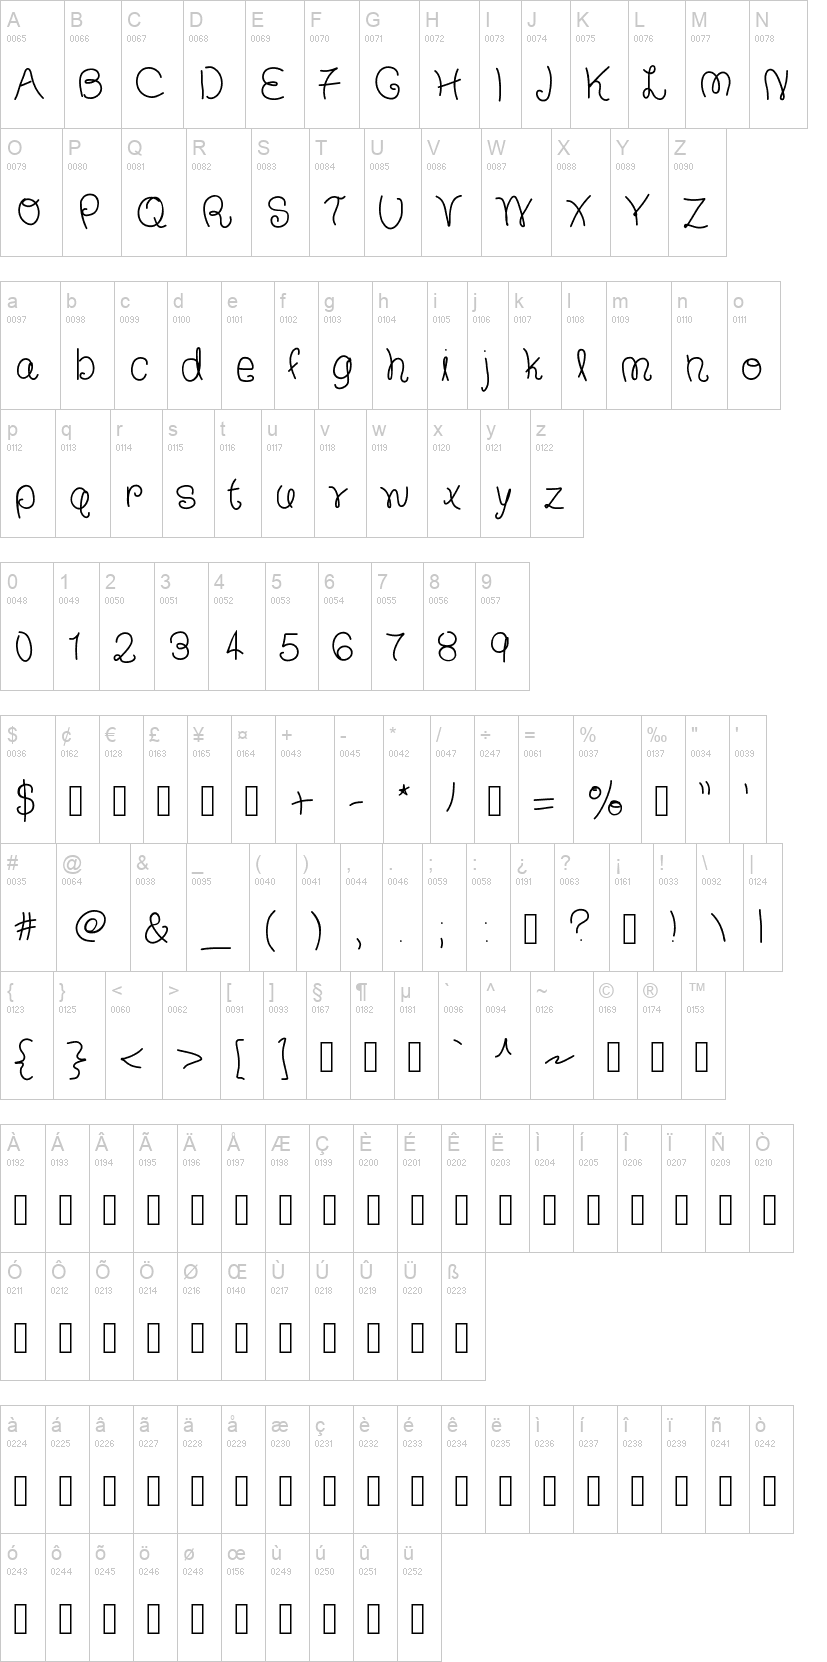 The Francesca Font